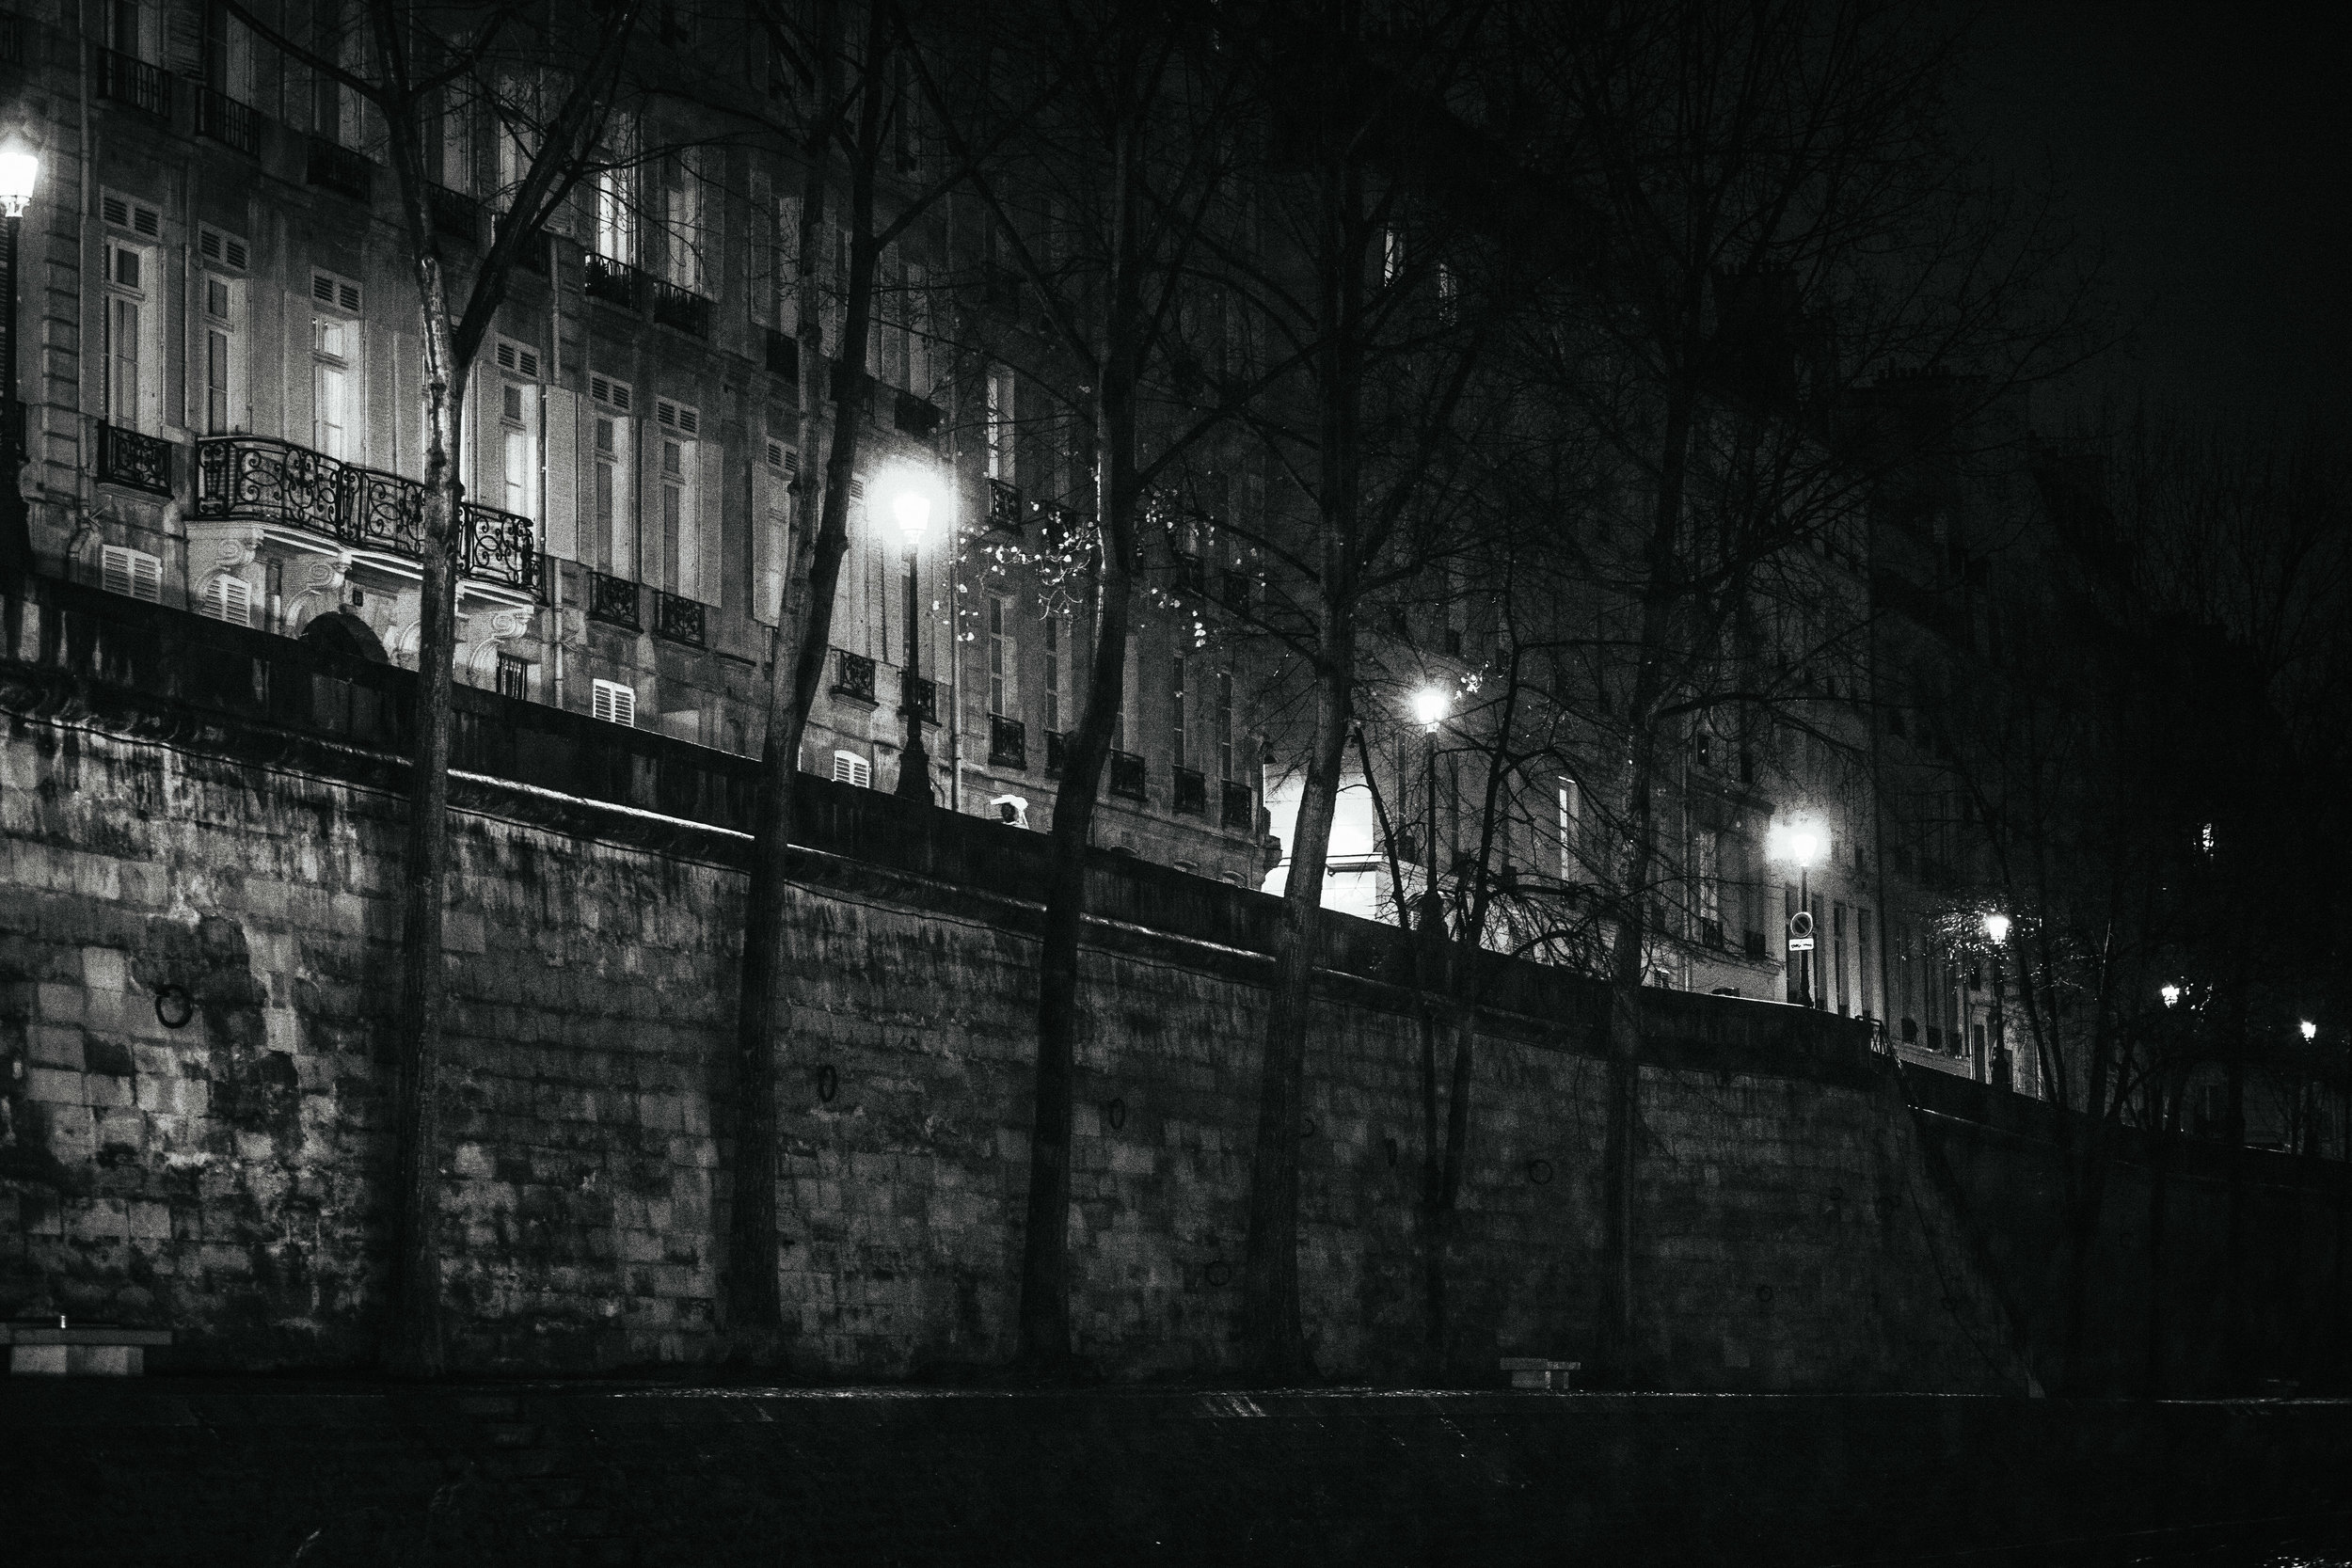 Street lamps along banks of the Seine River in Paris.